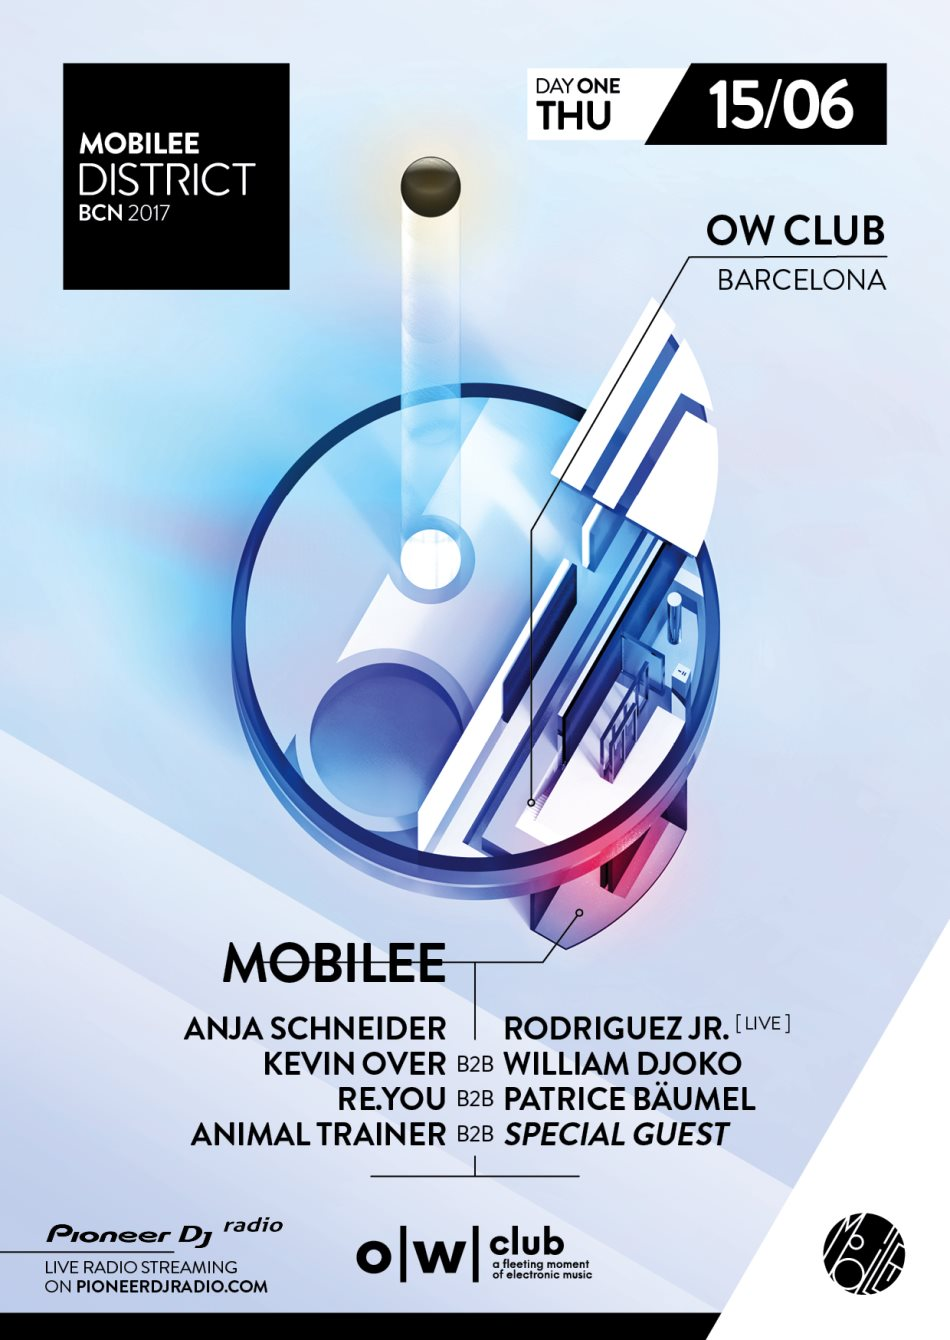 download → William Djoko B2B Kevin Over - live at Mobilee Showcase (OW Club, Barcelona, Sonar 2017) - 15-Jun-2017